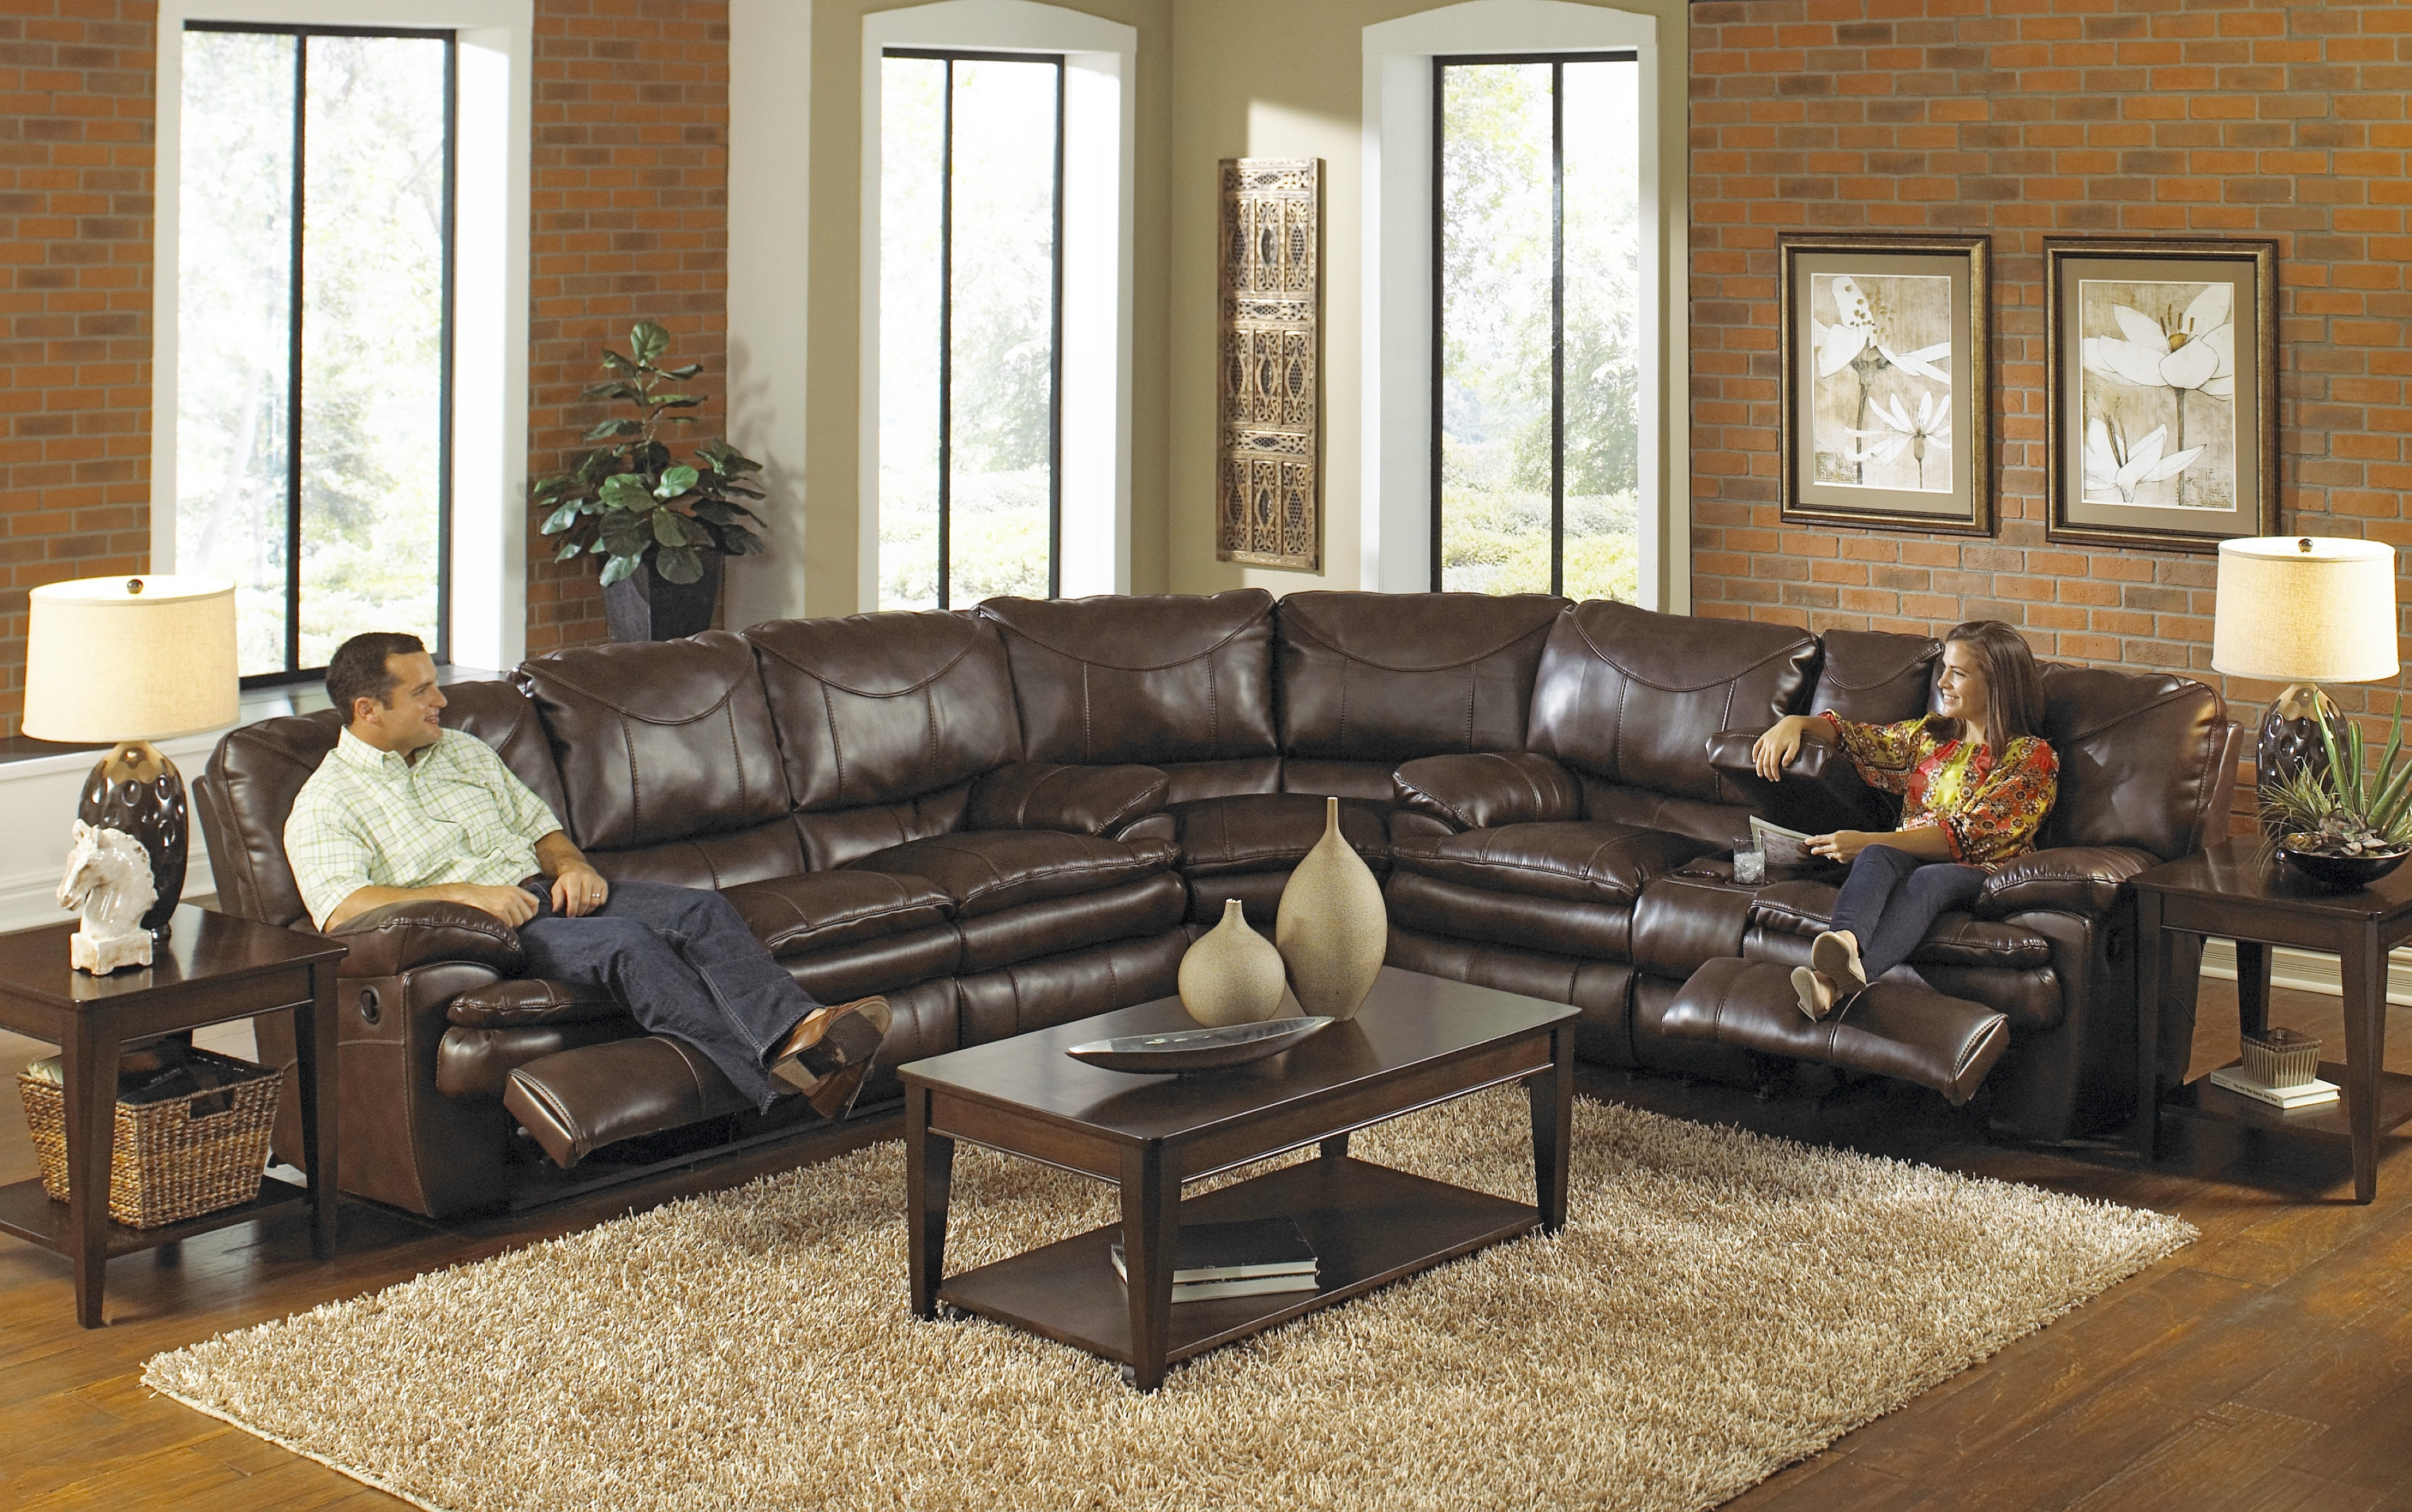 Delivered Sofa With Chaise And Recliner Buy Large Sectional Sofas For Leather Recliner Sectional Sofas (View 3 of 10)